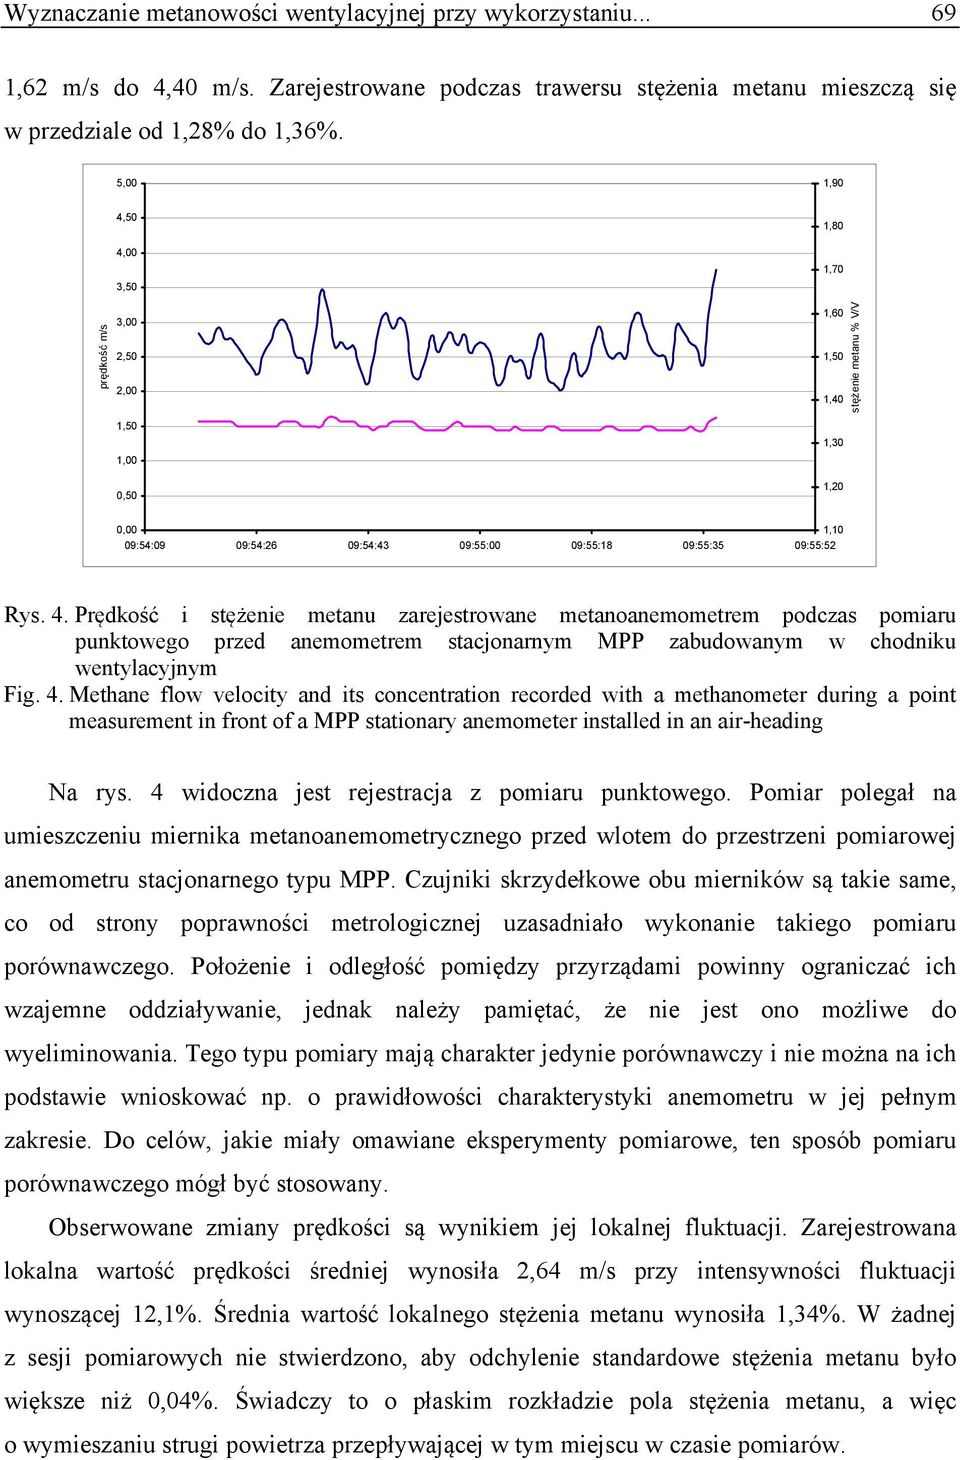 Rys. 4. Prędkość i stężenie metanu zarejestrowane metanoanemometrem podczas pomiaru punktowego przed anemometrem stacjonarnym MPP zabudowanym w chodniku wentylacyjnym Fig. 4. Methane flow velocity and its concentration recorded with a methanometer during a point measurement in front of a MPP stationary anemometer installed in an air-heading Na rys.